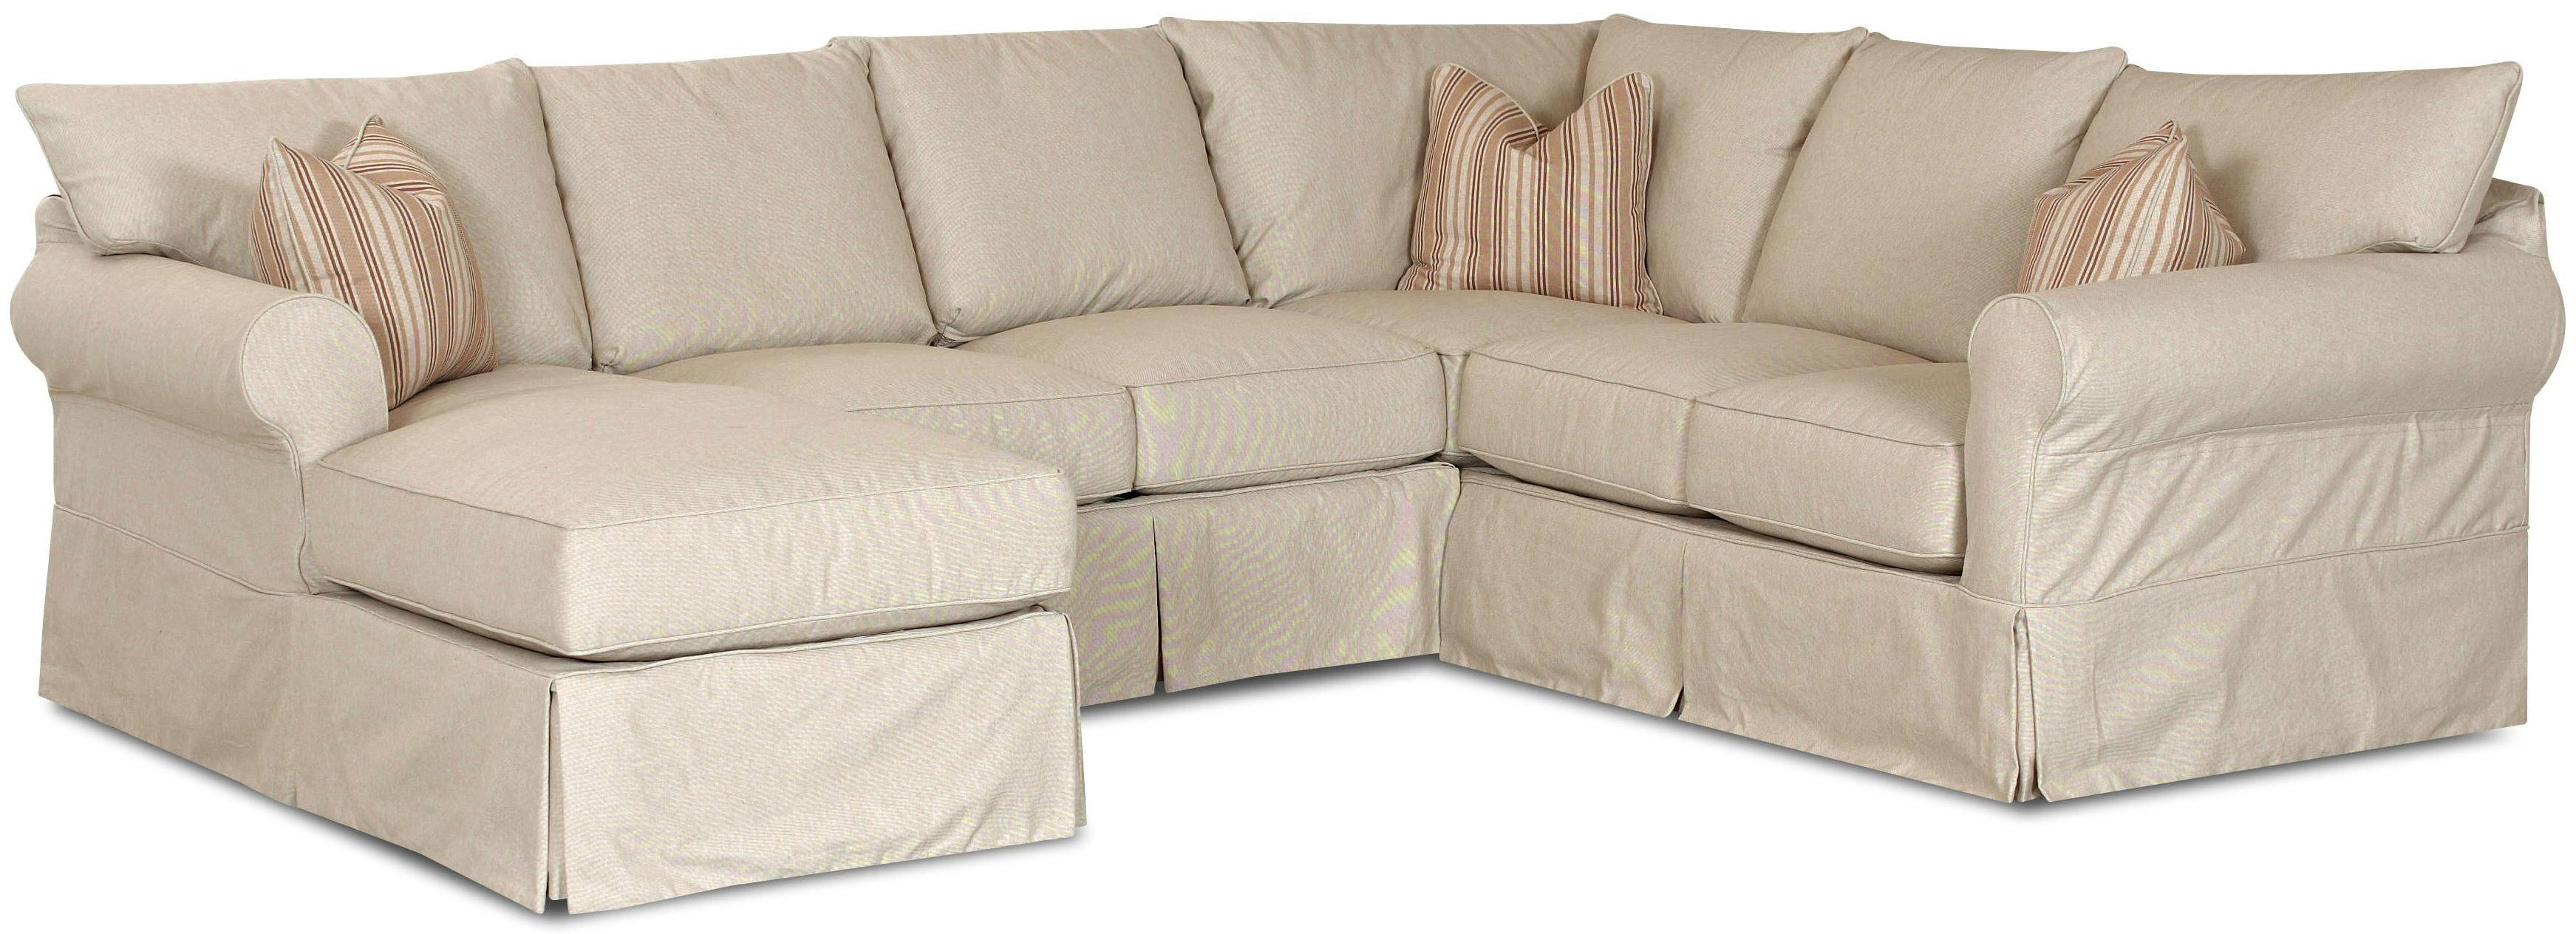 Furniture: Pretty Slipcovered Sectional Sofa For Comfy Your Living within 3 Piece Sectional Sofa Slipcovers (Image 6 of 33)